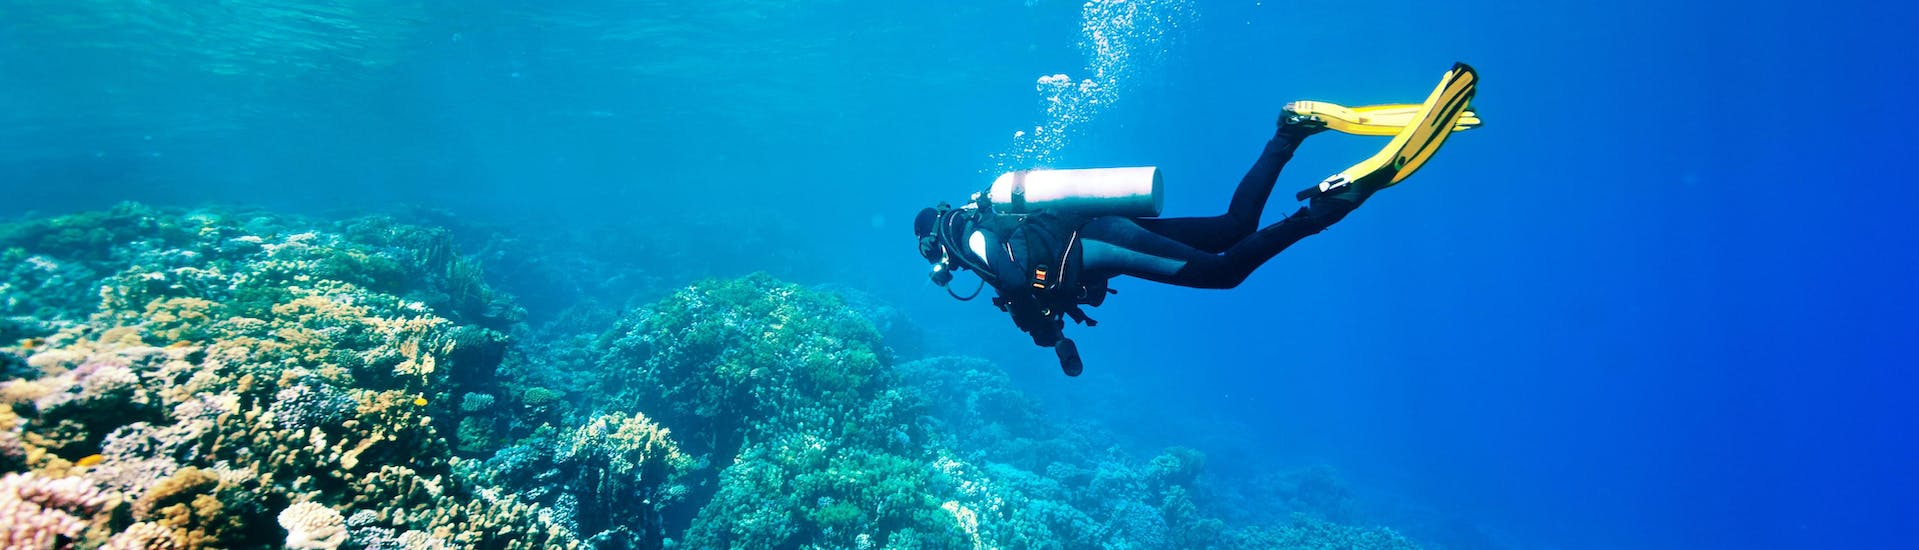 A scuba diver is exploring a reef while scuba diving in the scuba diving destination of Korčula (town).